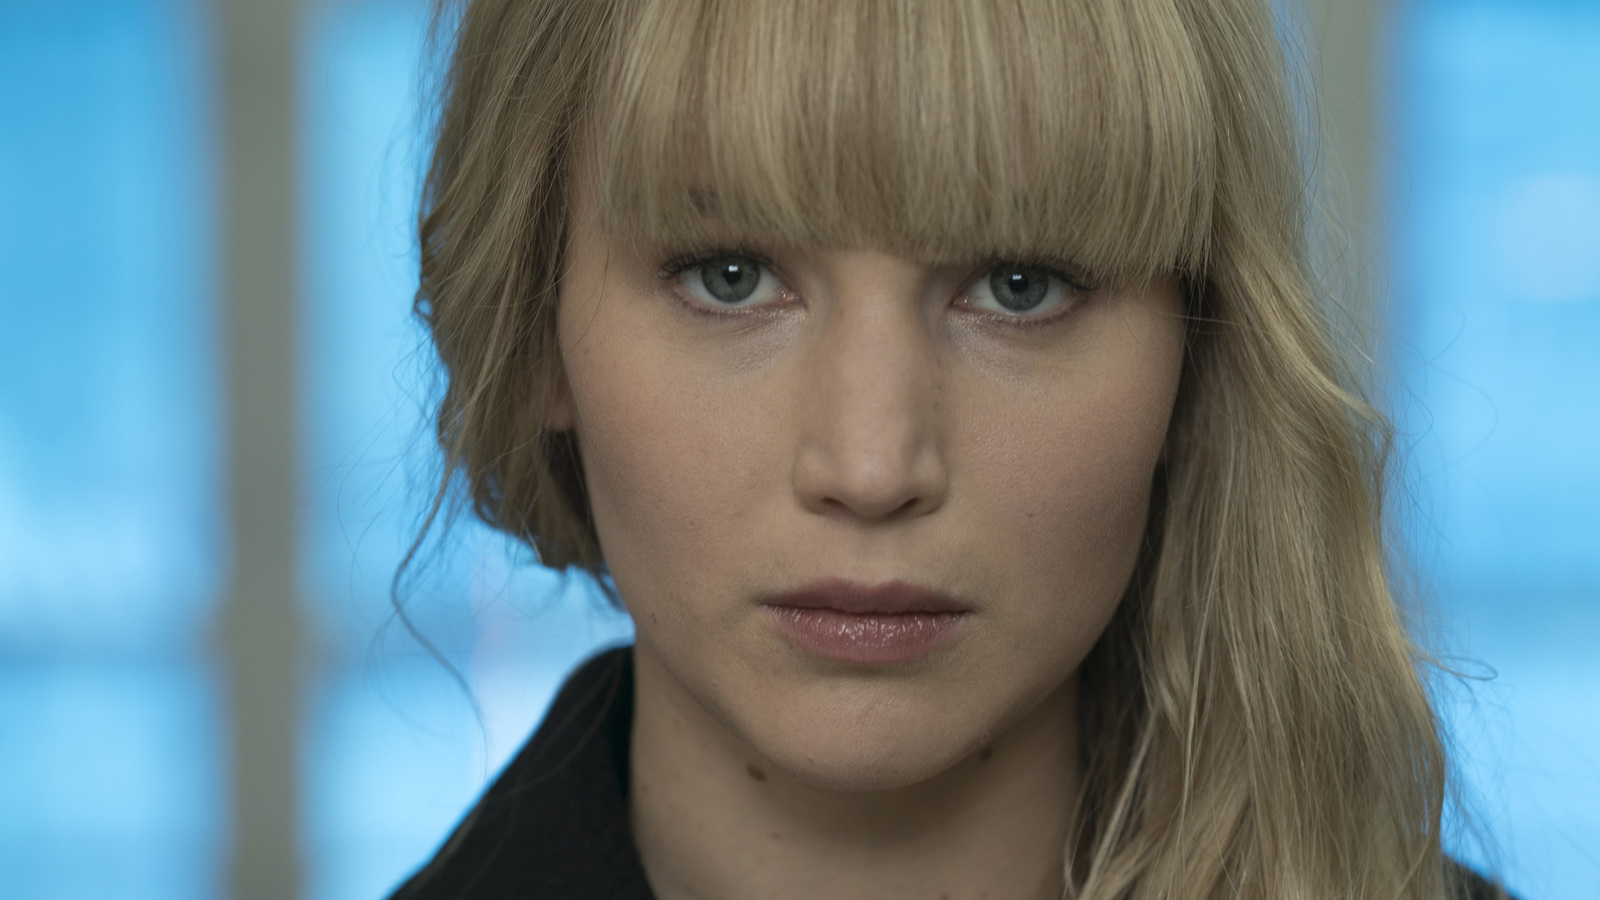 jennifer-lawrence-in-red-sparrow-movie-dh.jpg